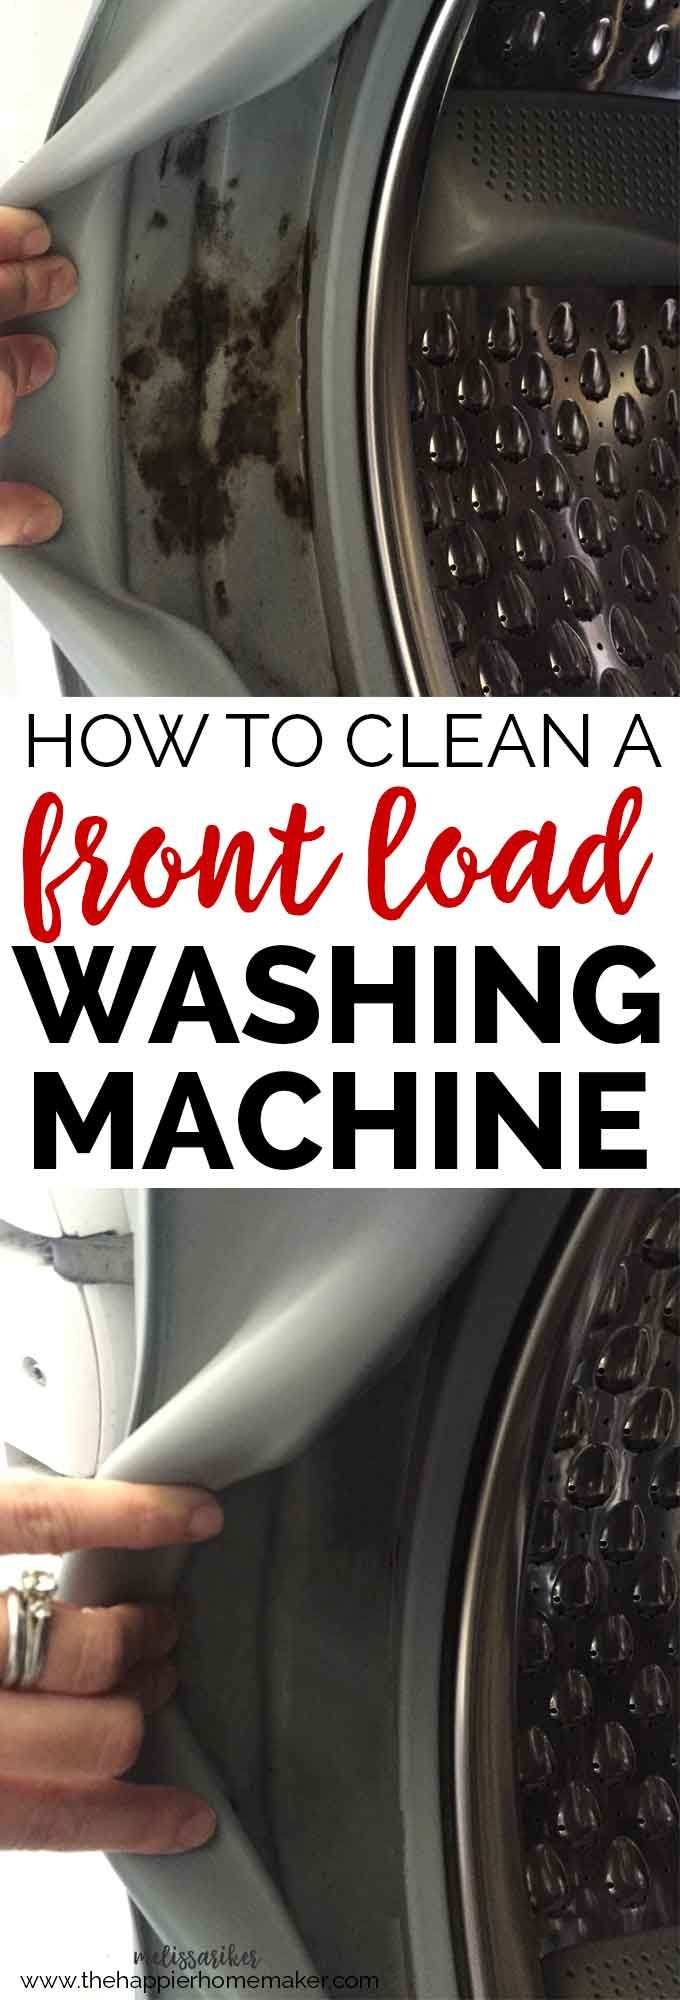 117 Best Essential Tools Skills Images On Pinterest Electrical Rough In Wiring Of Earthship Tire Walls Pictures To Pin How Clean A Front Load Washing Machine